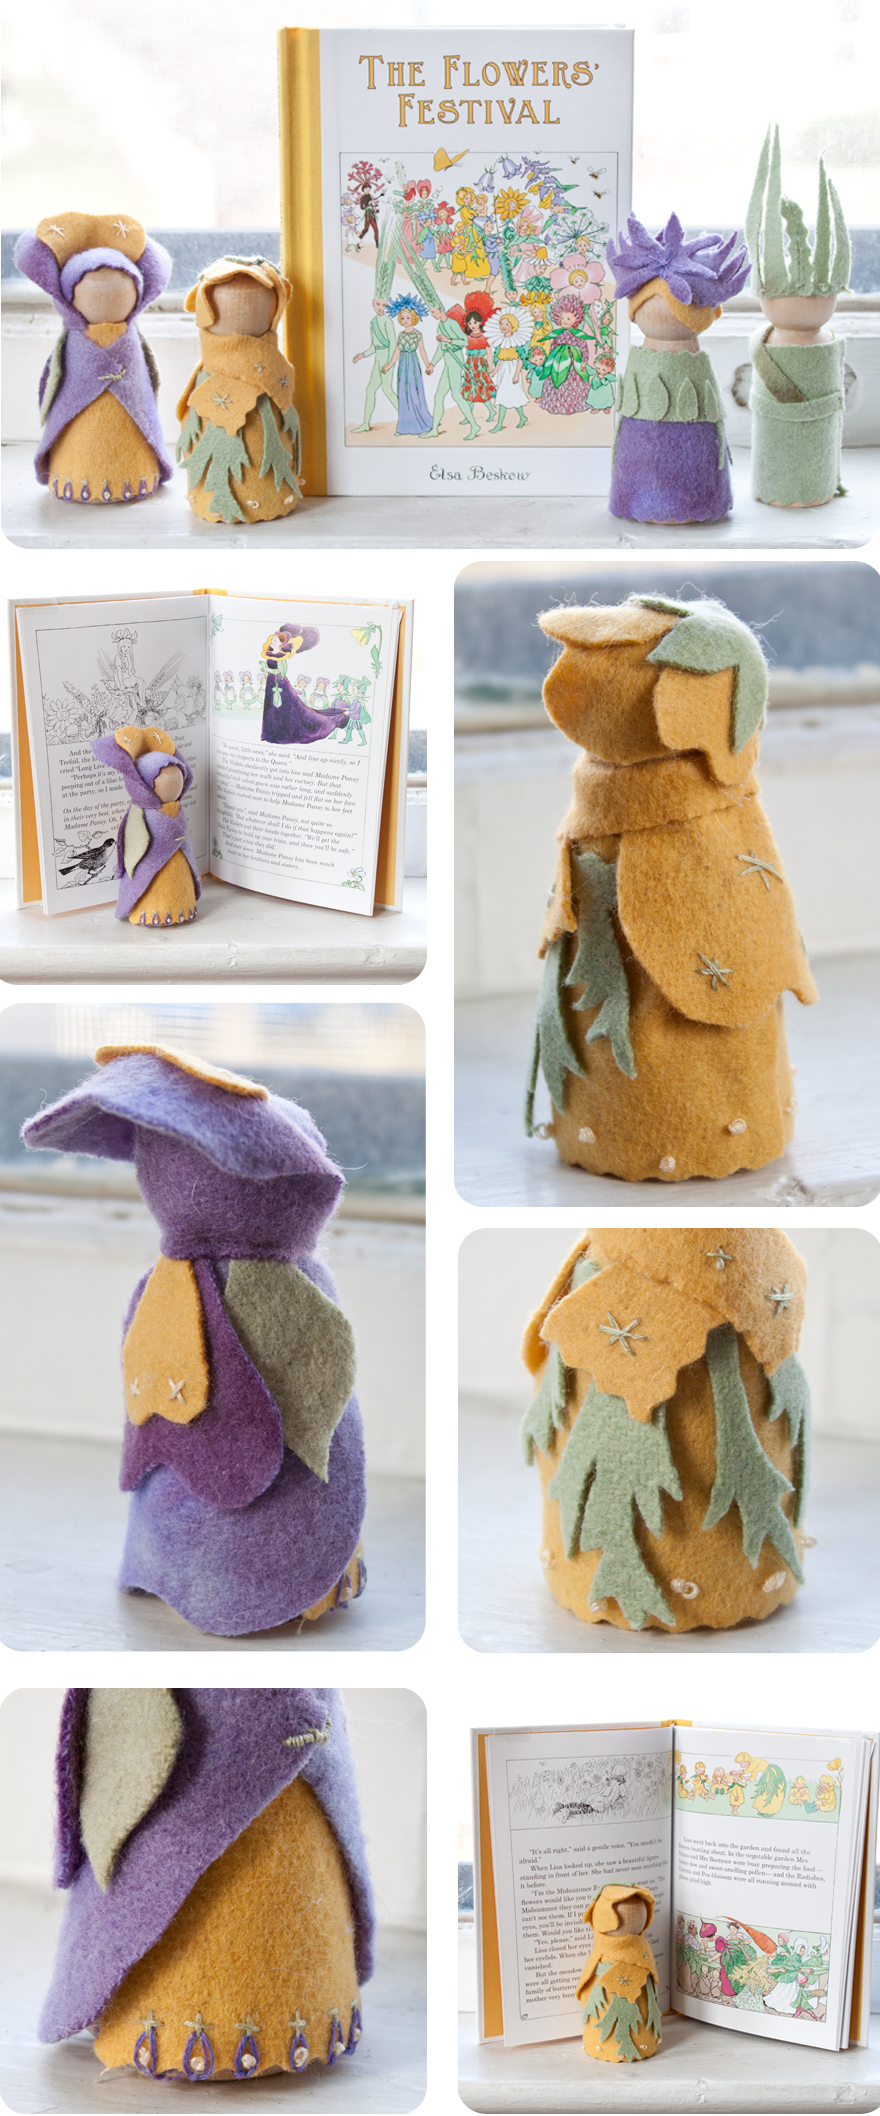 The Flowers' Festival, by Elsa Beskow inspired our spring craft project, made with wool felt and wooden peg dolls from Palumba natural toys and non-toxic arts and craft supplies.